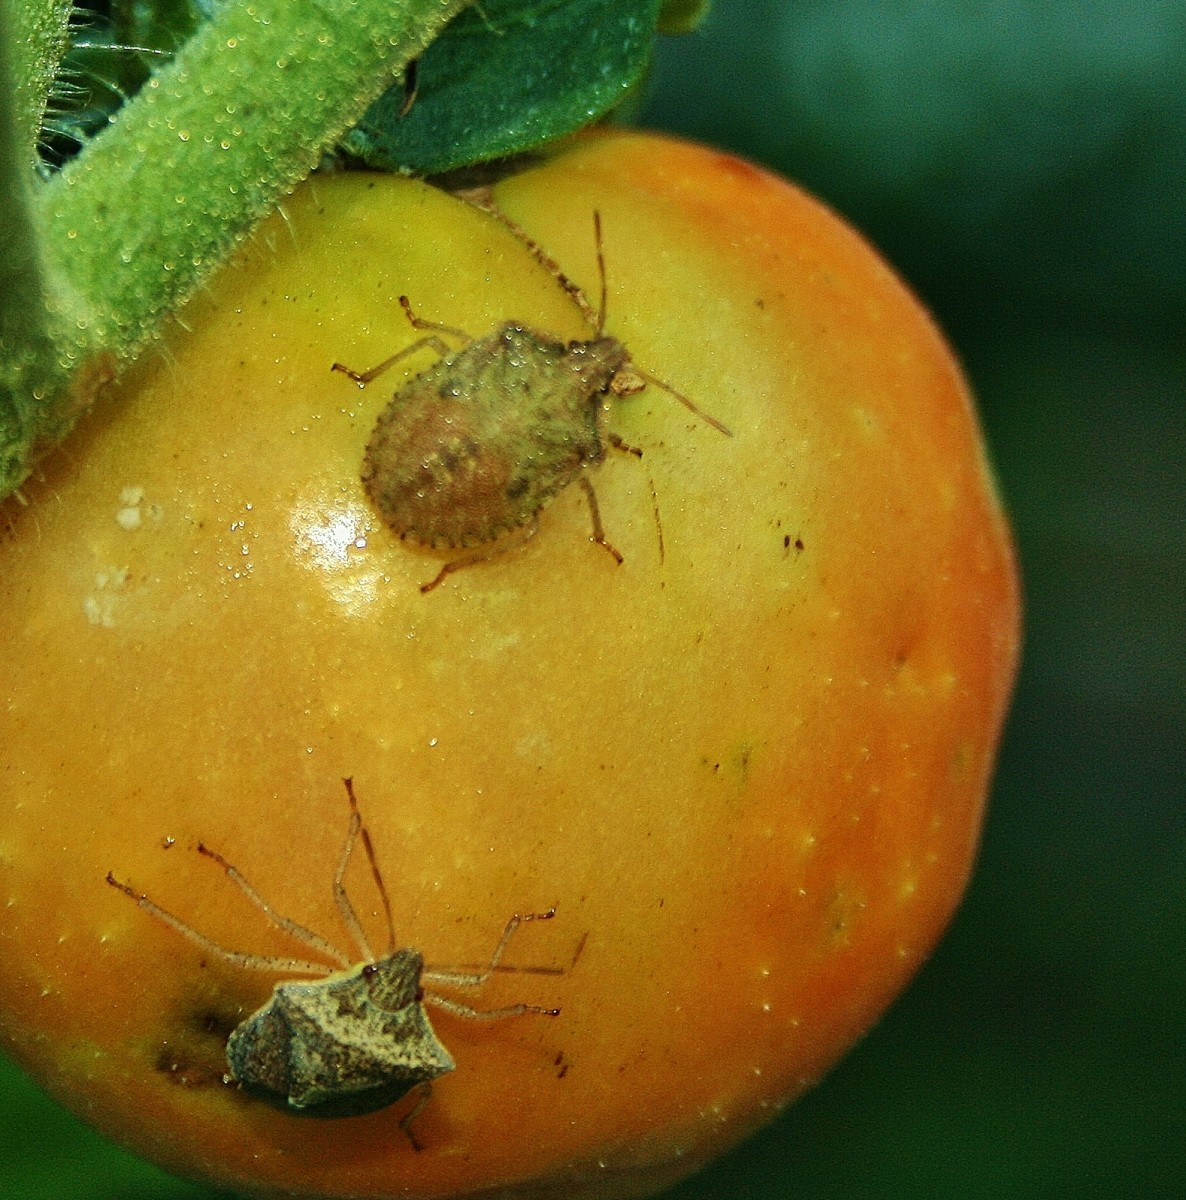 When stink bugs feed on tomatoes, they damage the fruit, but it's still edible.